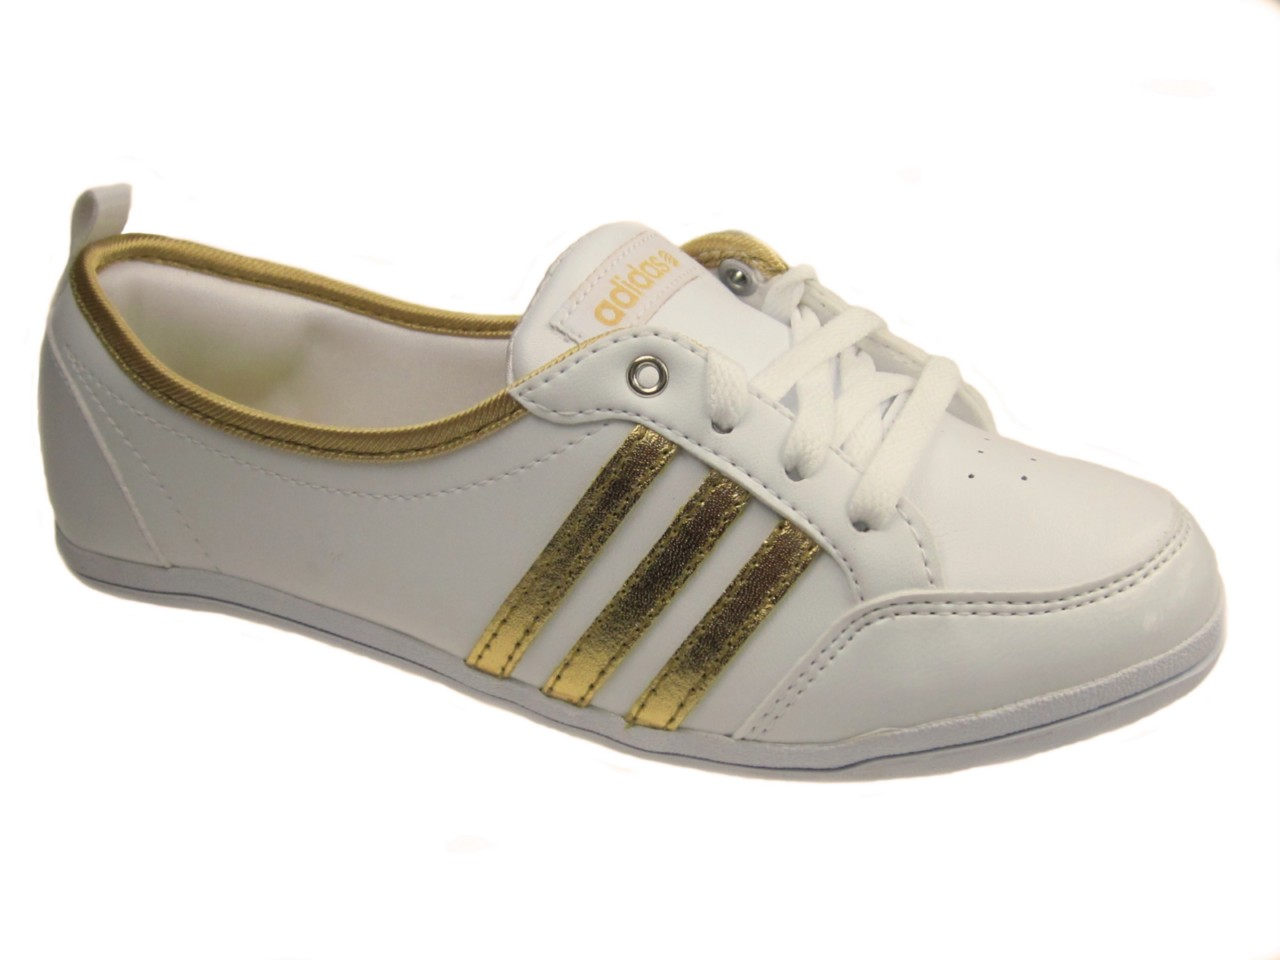 best loved 4c11c 0b502 Image is loading ADIDAS-LADIES-PIONA-BLING-FLAT-BALLERINA-TRAINERS-WHITE-